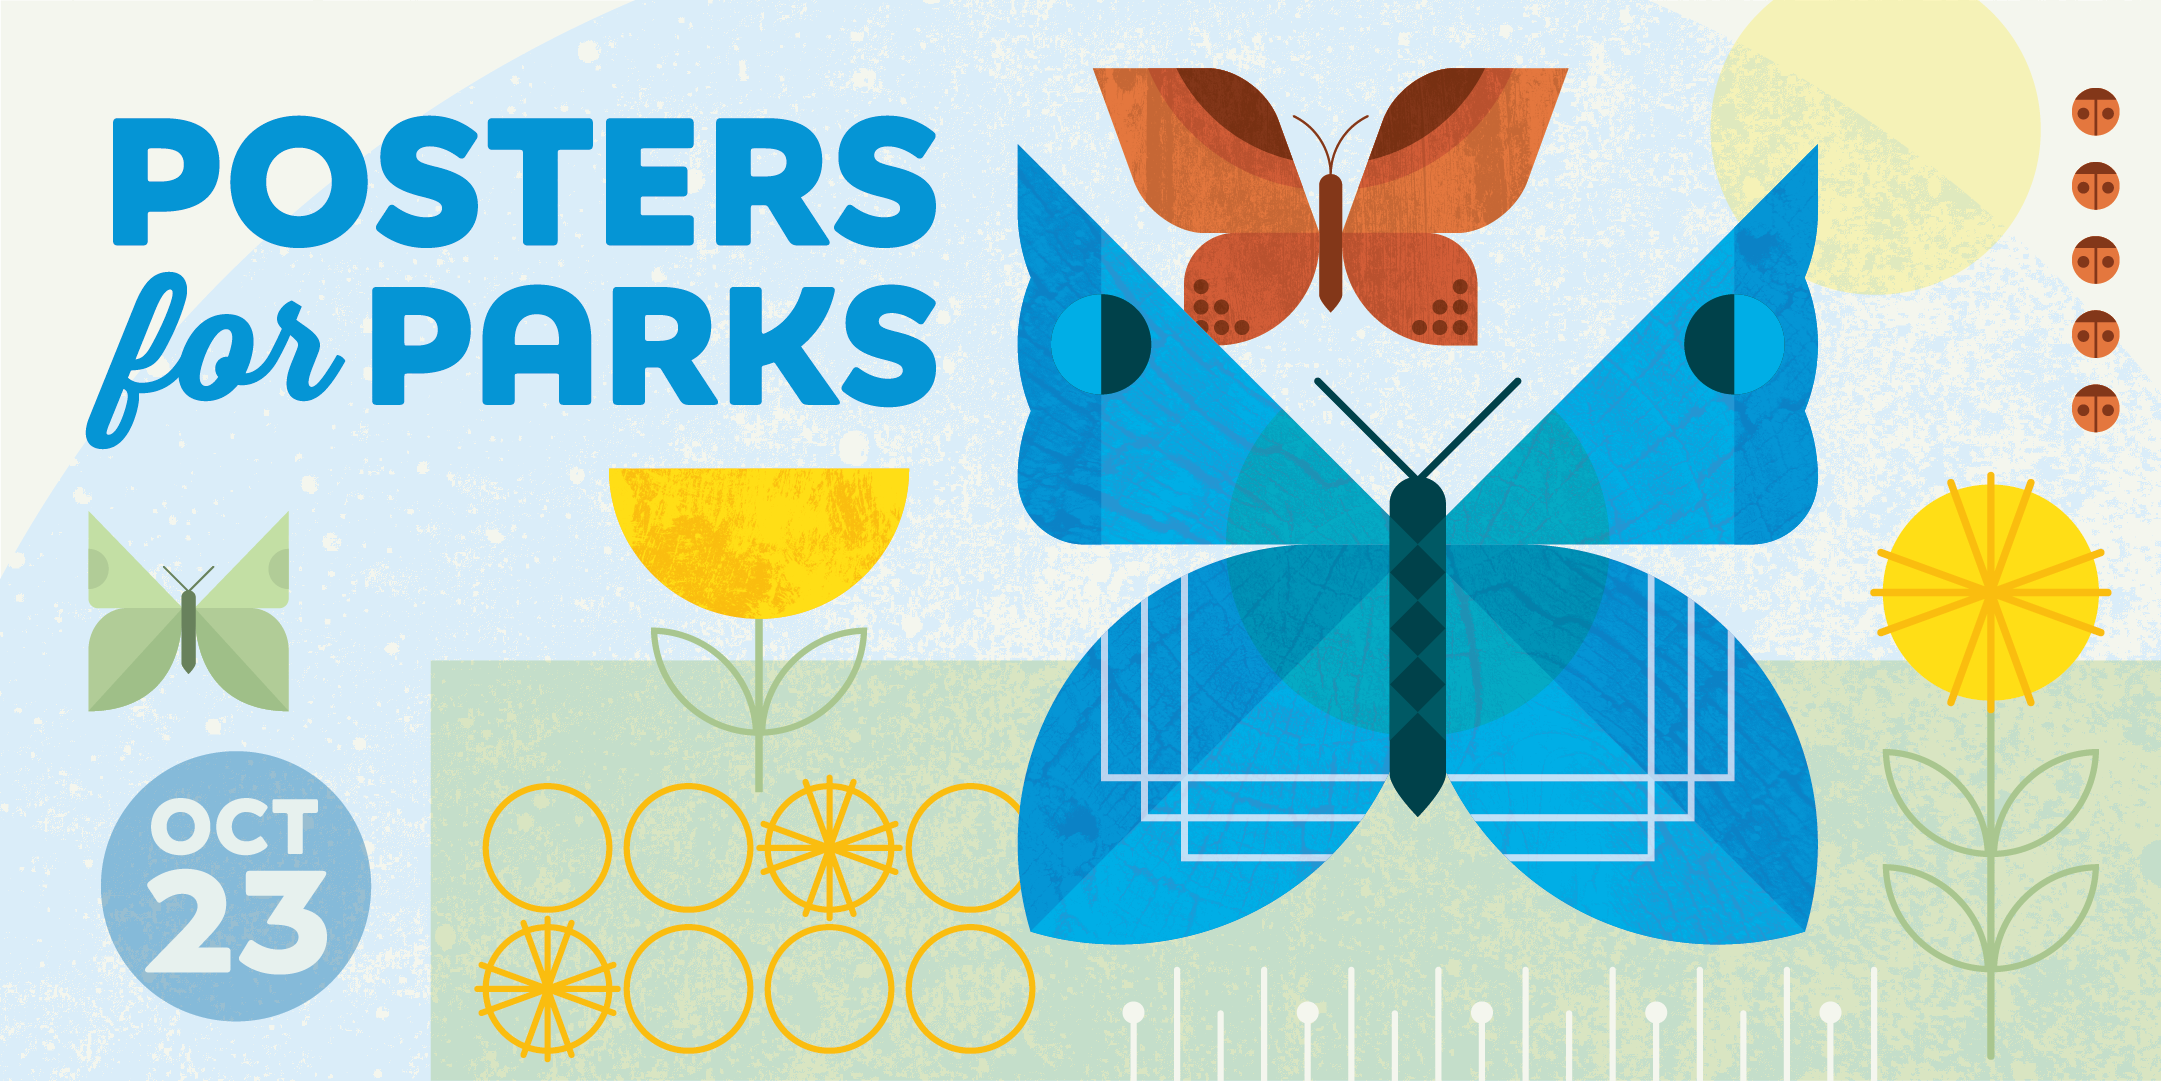 Posters for Parks, October 23, 2021, Event banner with colorful butterflies and flowers